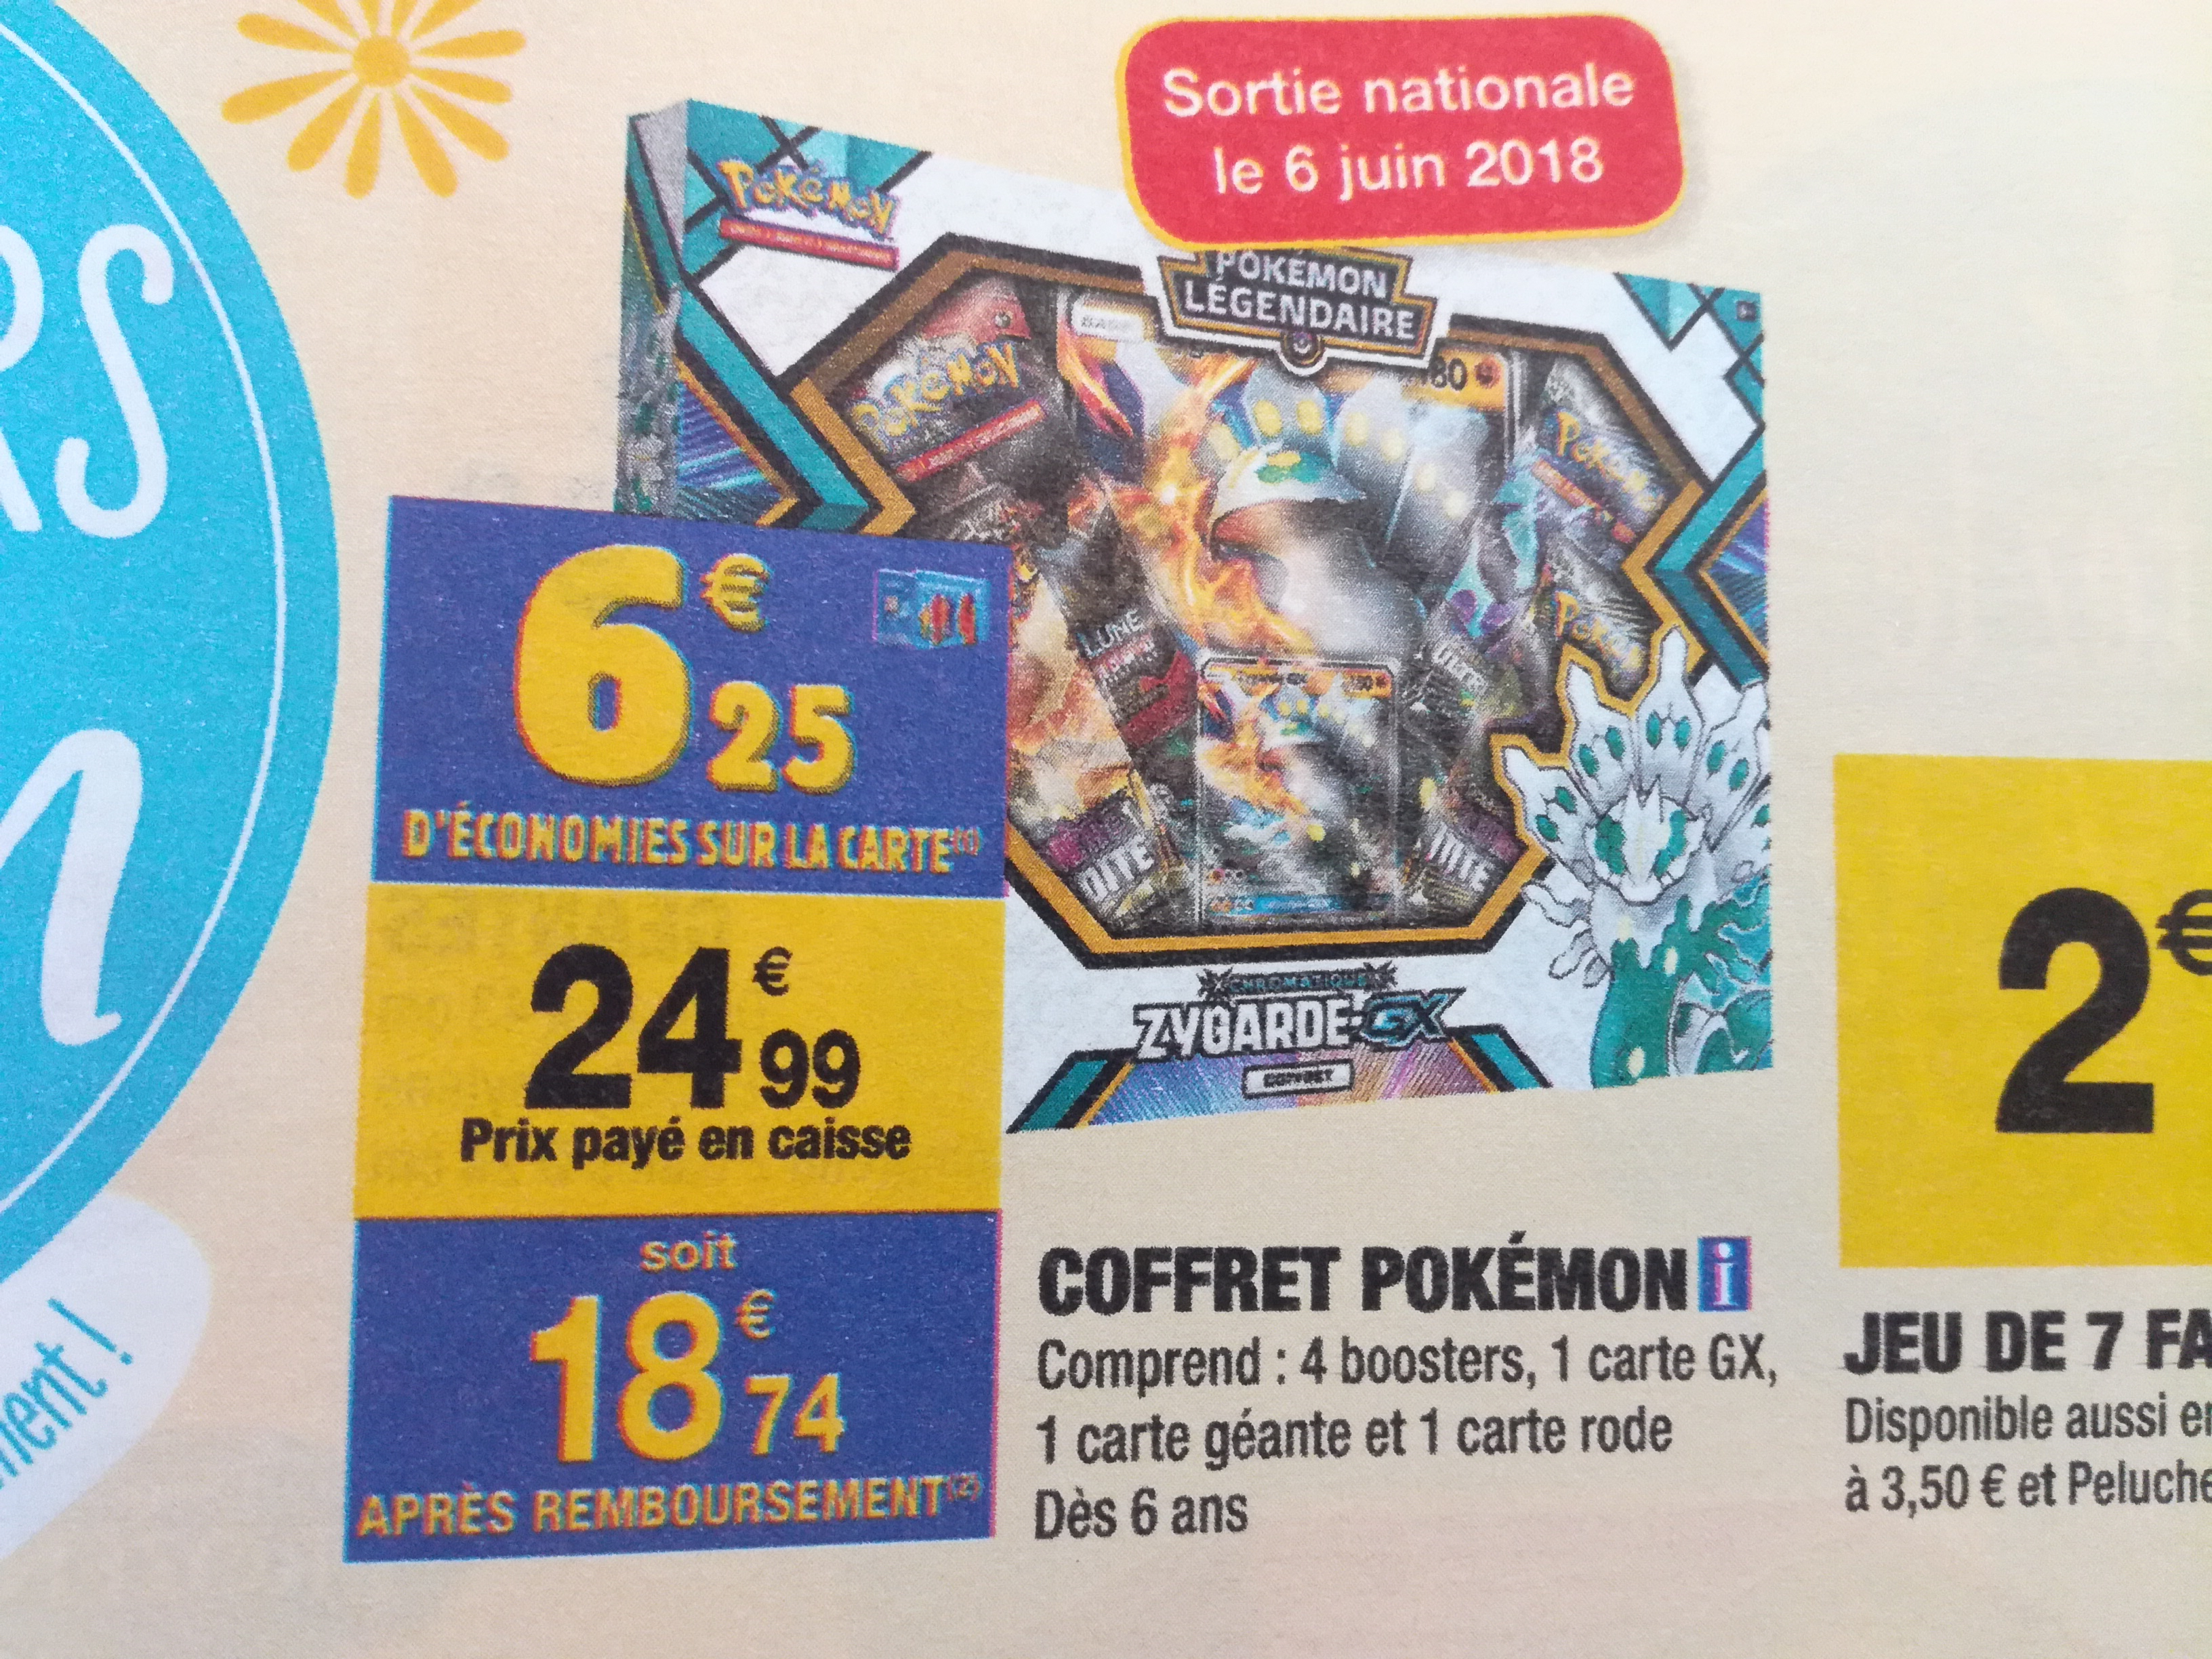 coffret pokemon noel 2018 carrefour Bonnes affaires] Display/Pack/Booster/Deck/Coffret   Page 34  coffret pokemon noel 2018 carrefour